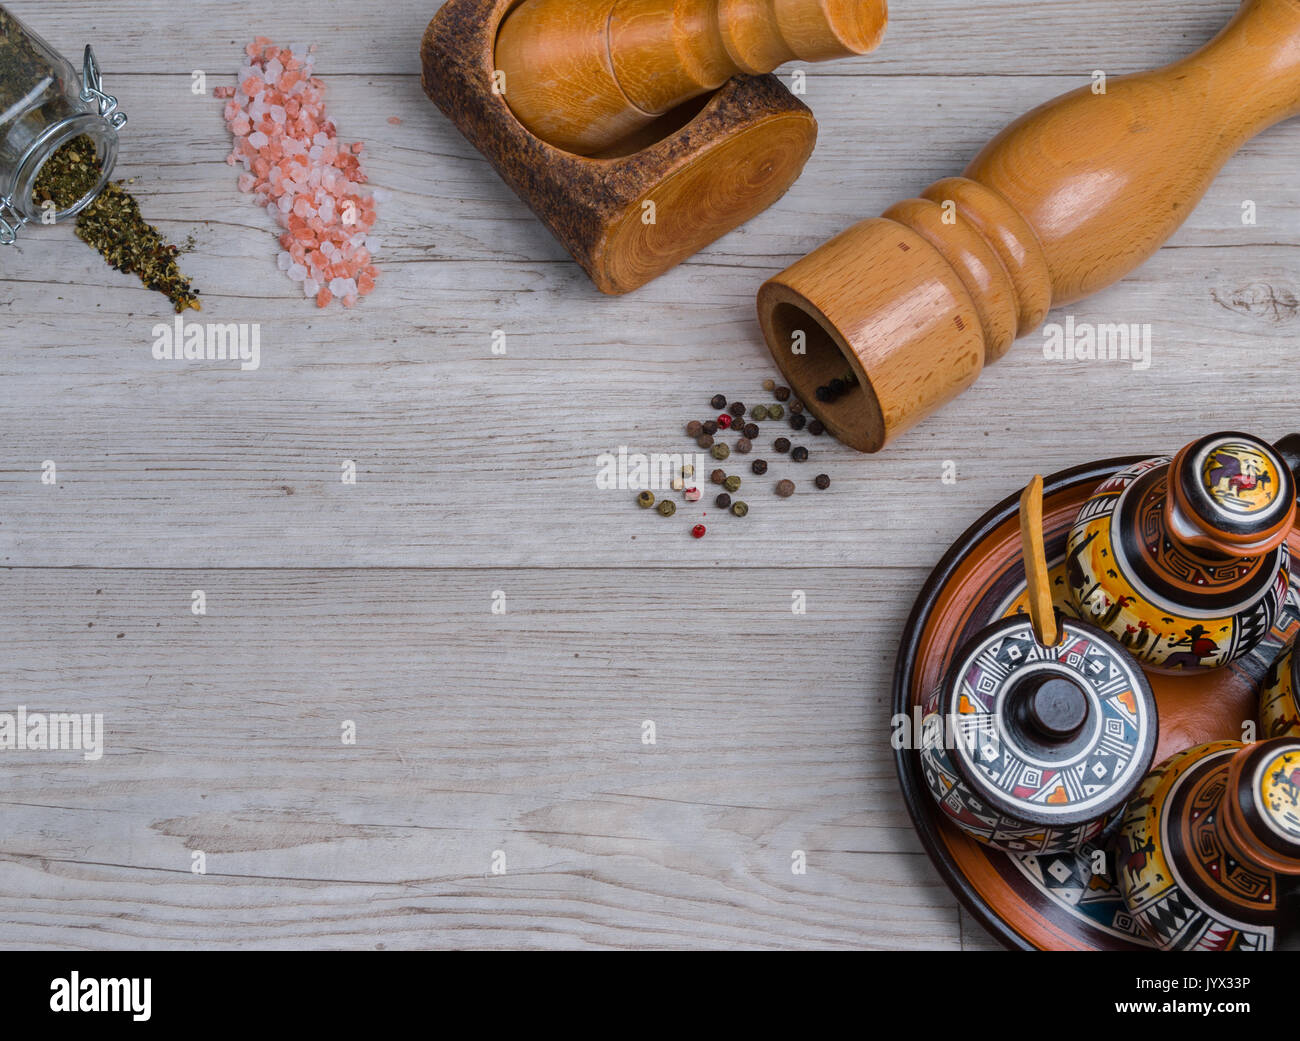 oils and spices top view with wooden background - Stock Image